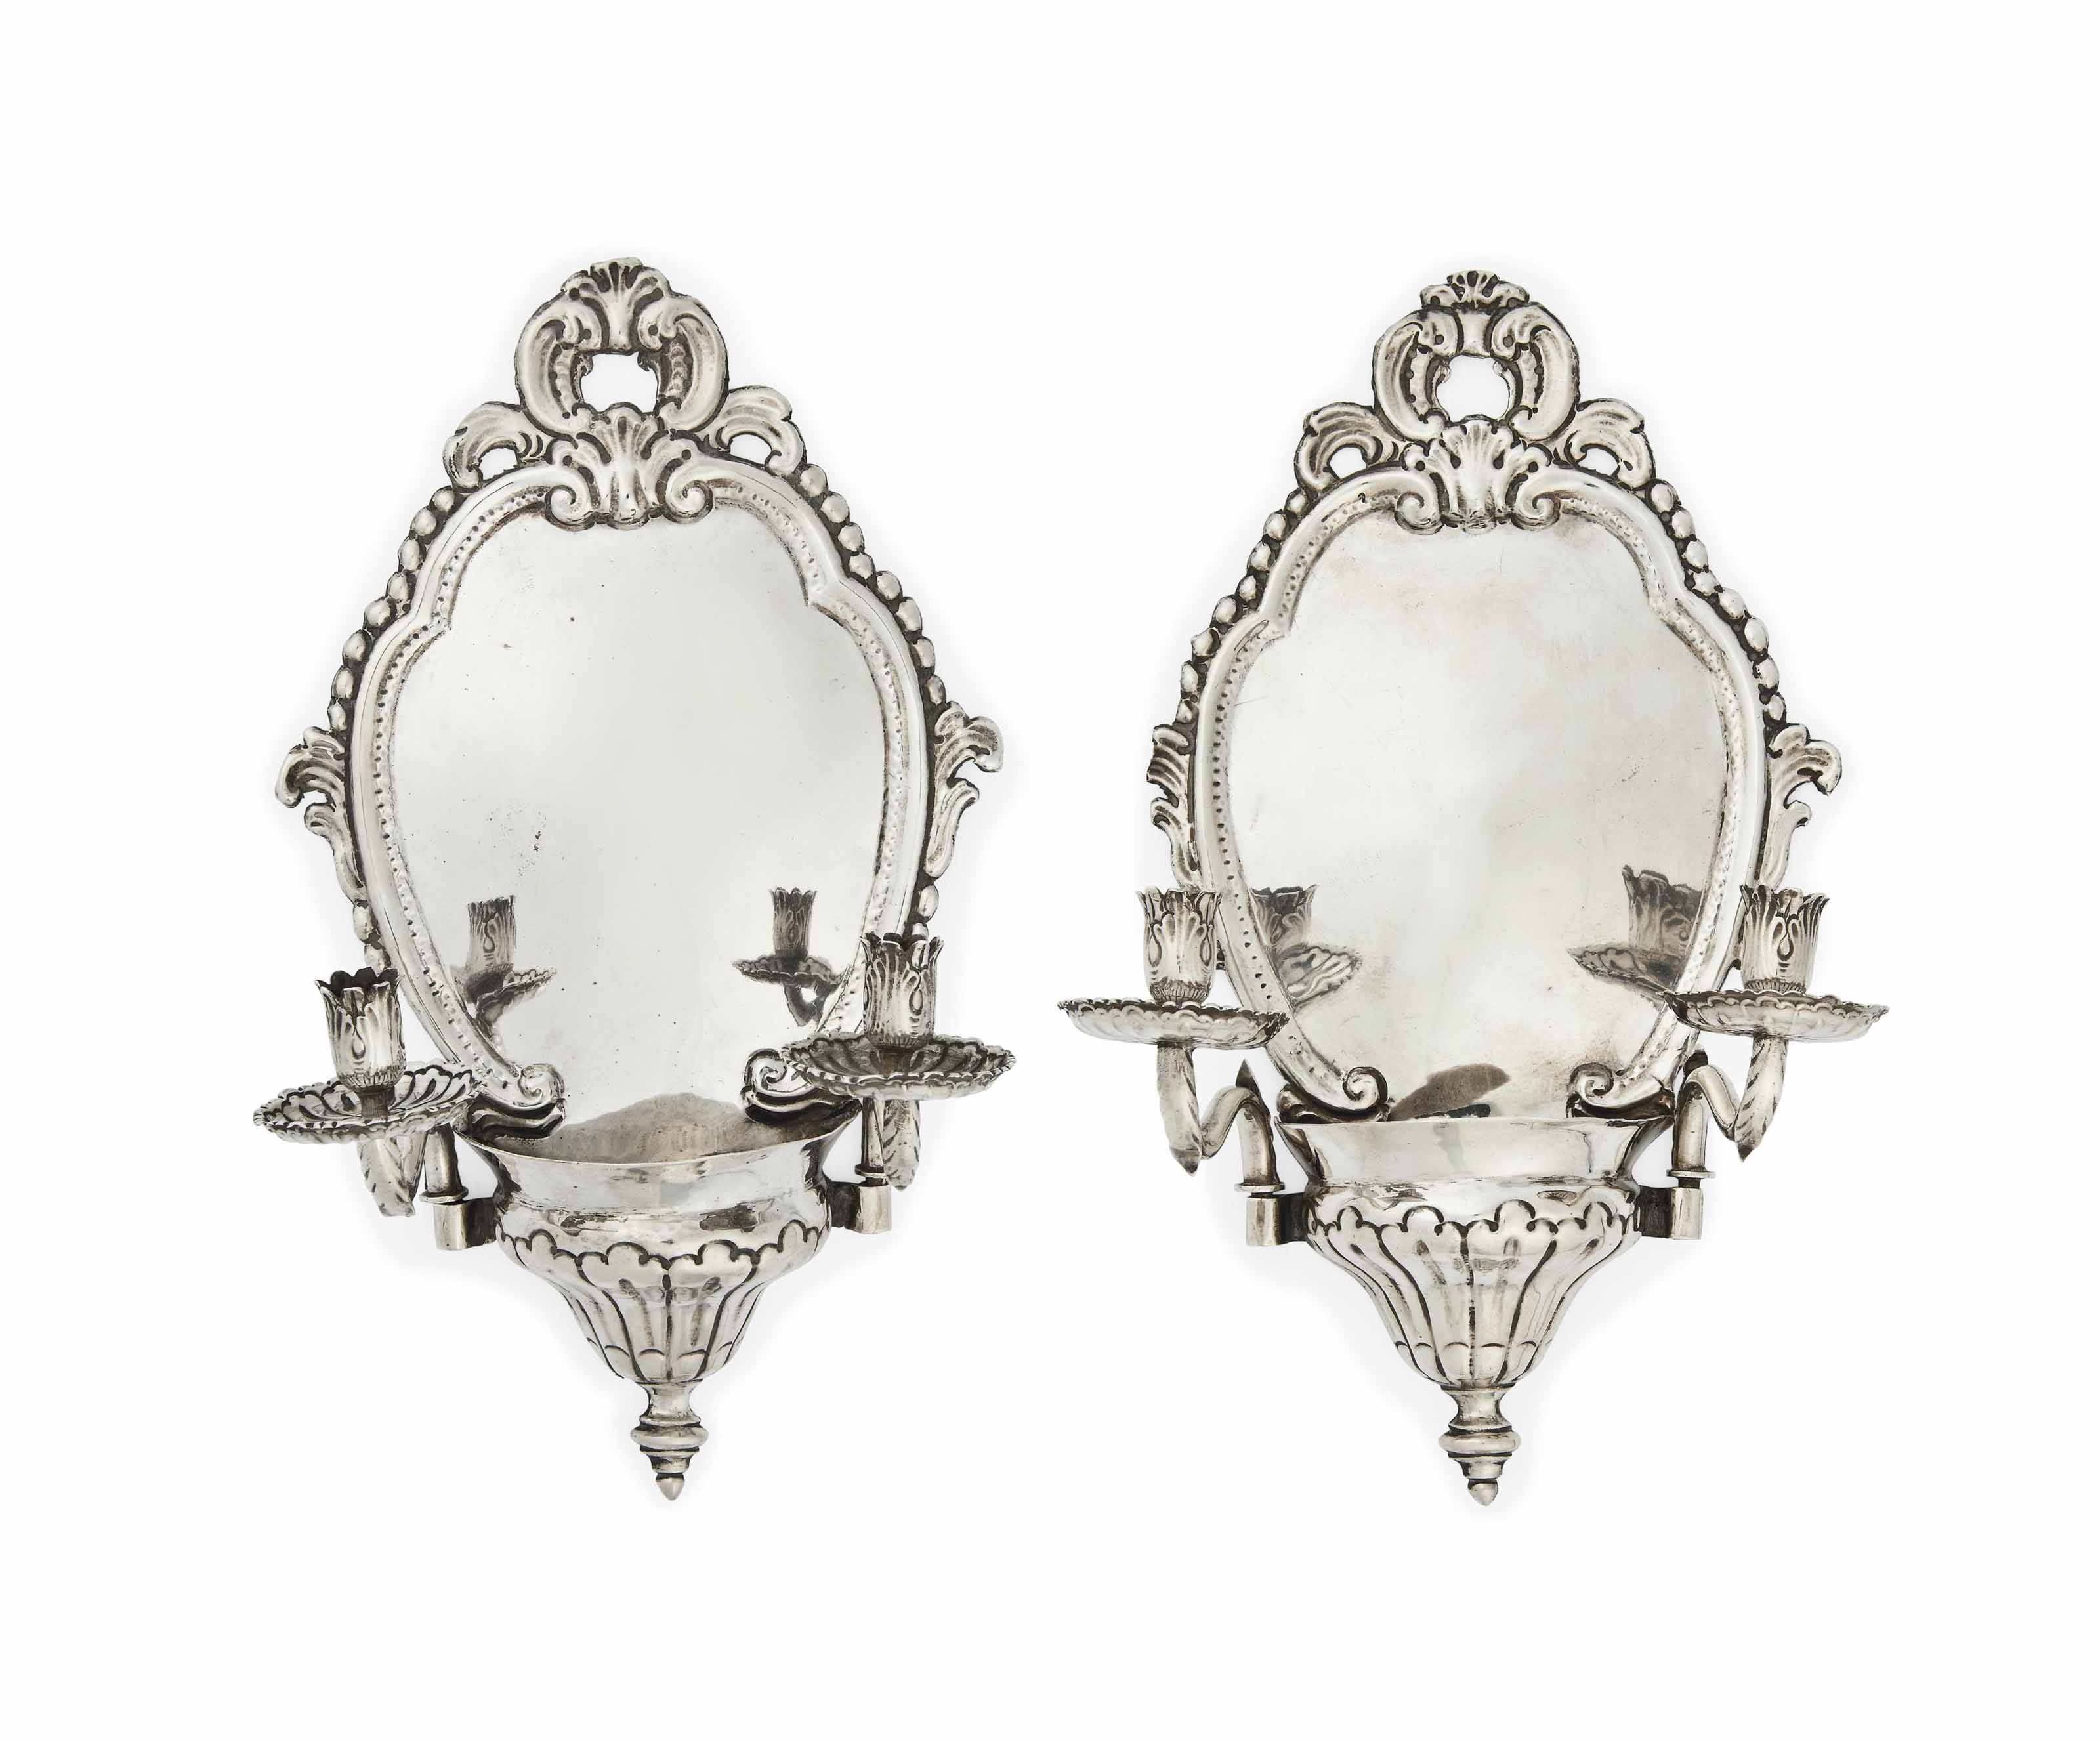 A PAIR OF ITALIAN SILVER WALL SCONCES